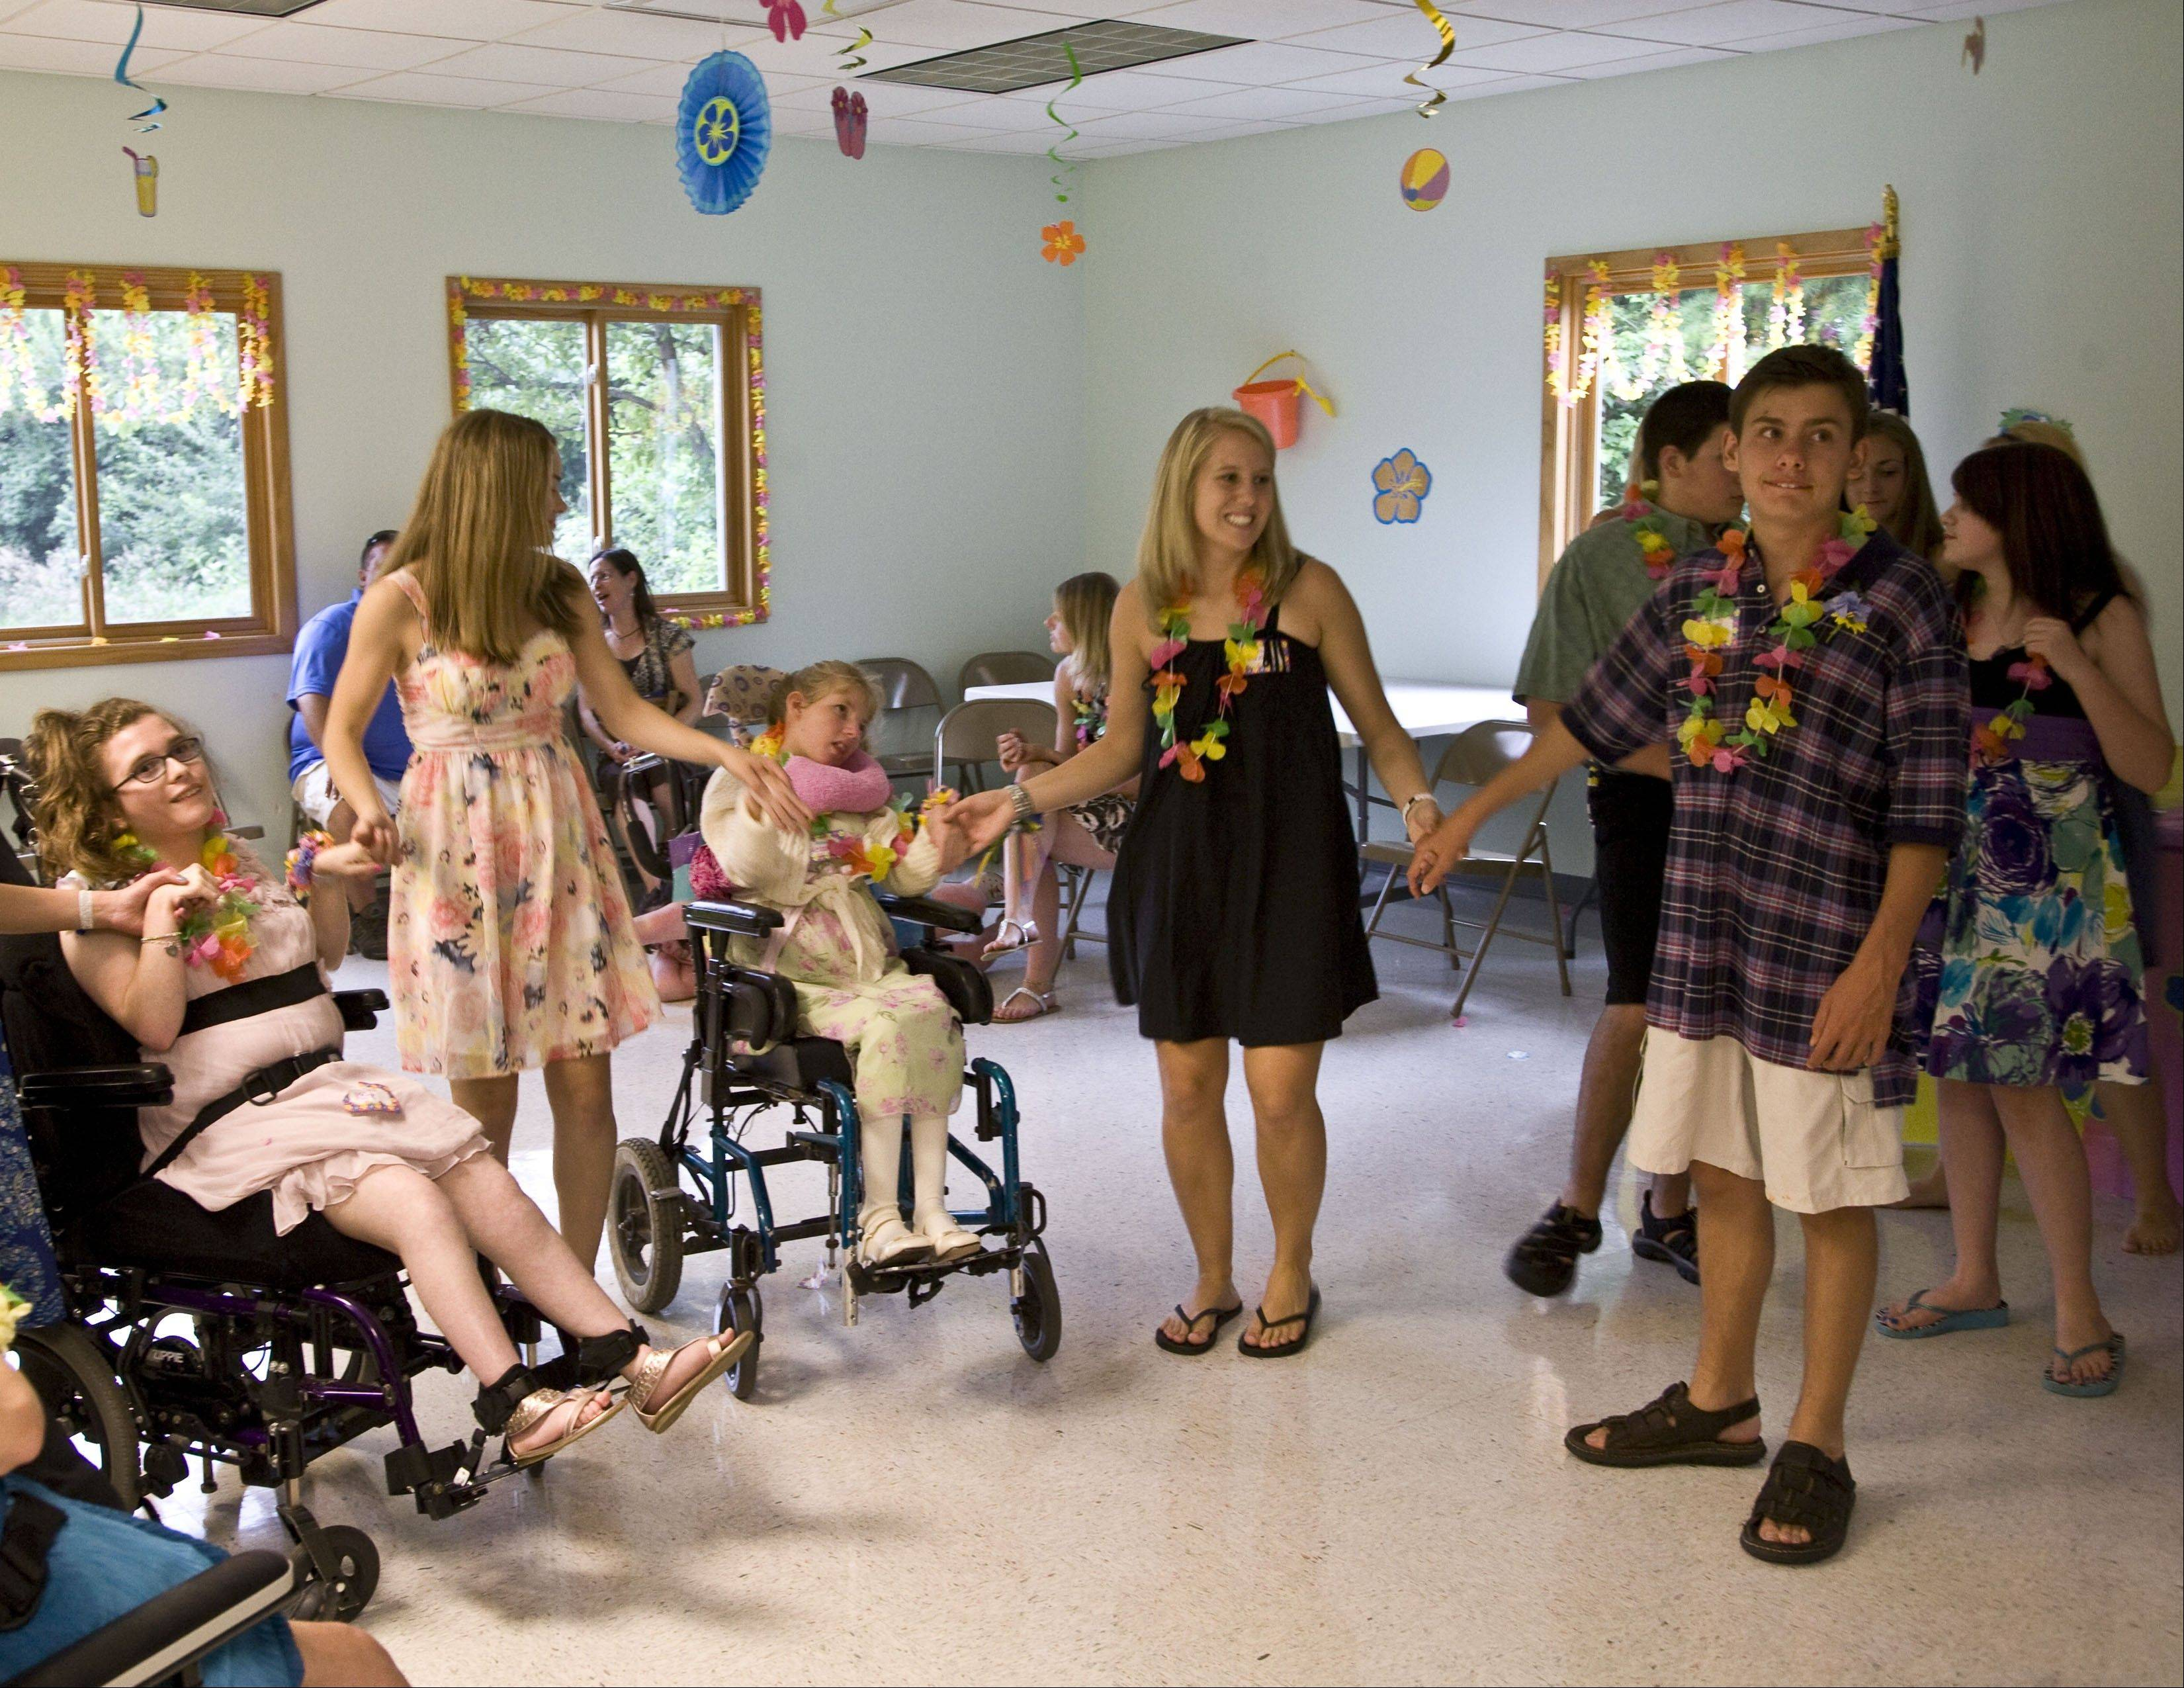 Volunteers Megan Richmond, standing left, Chassidy Mangers and Sean Stanton mix with guests at a dance Mangers arranged earlier this month at the Blackberry Township Town Hall. The dance was for children with special needs.